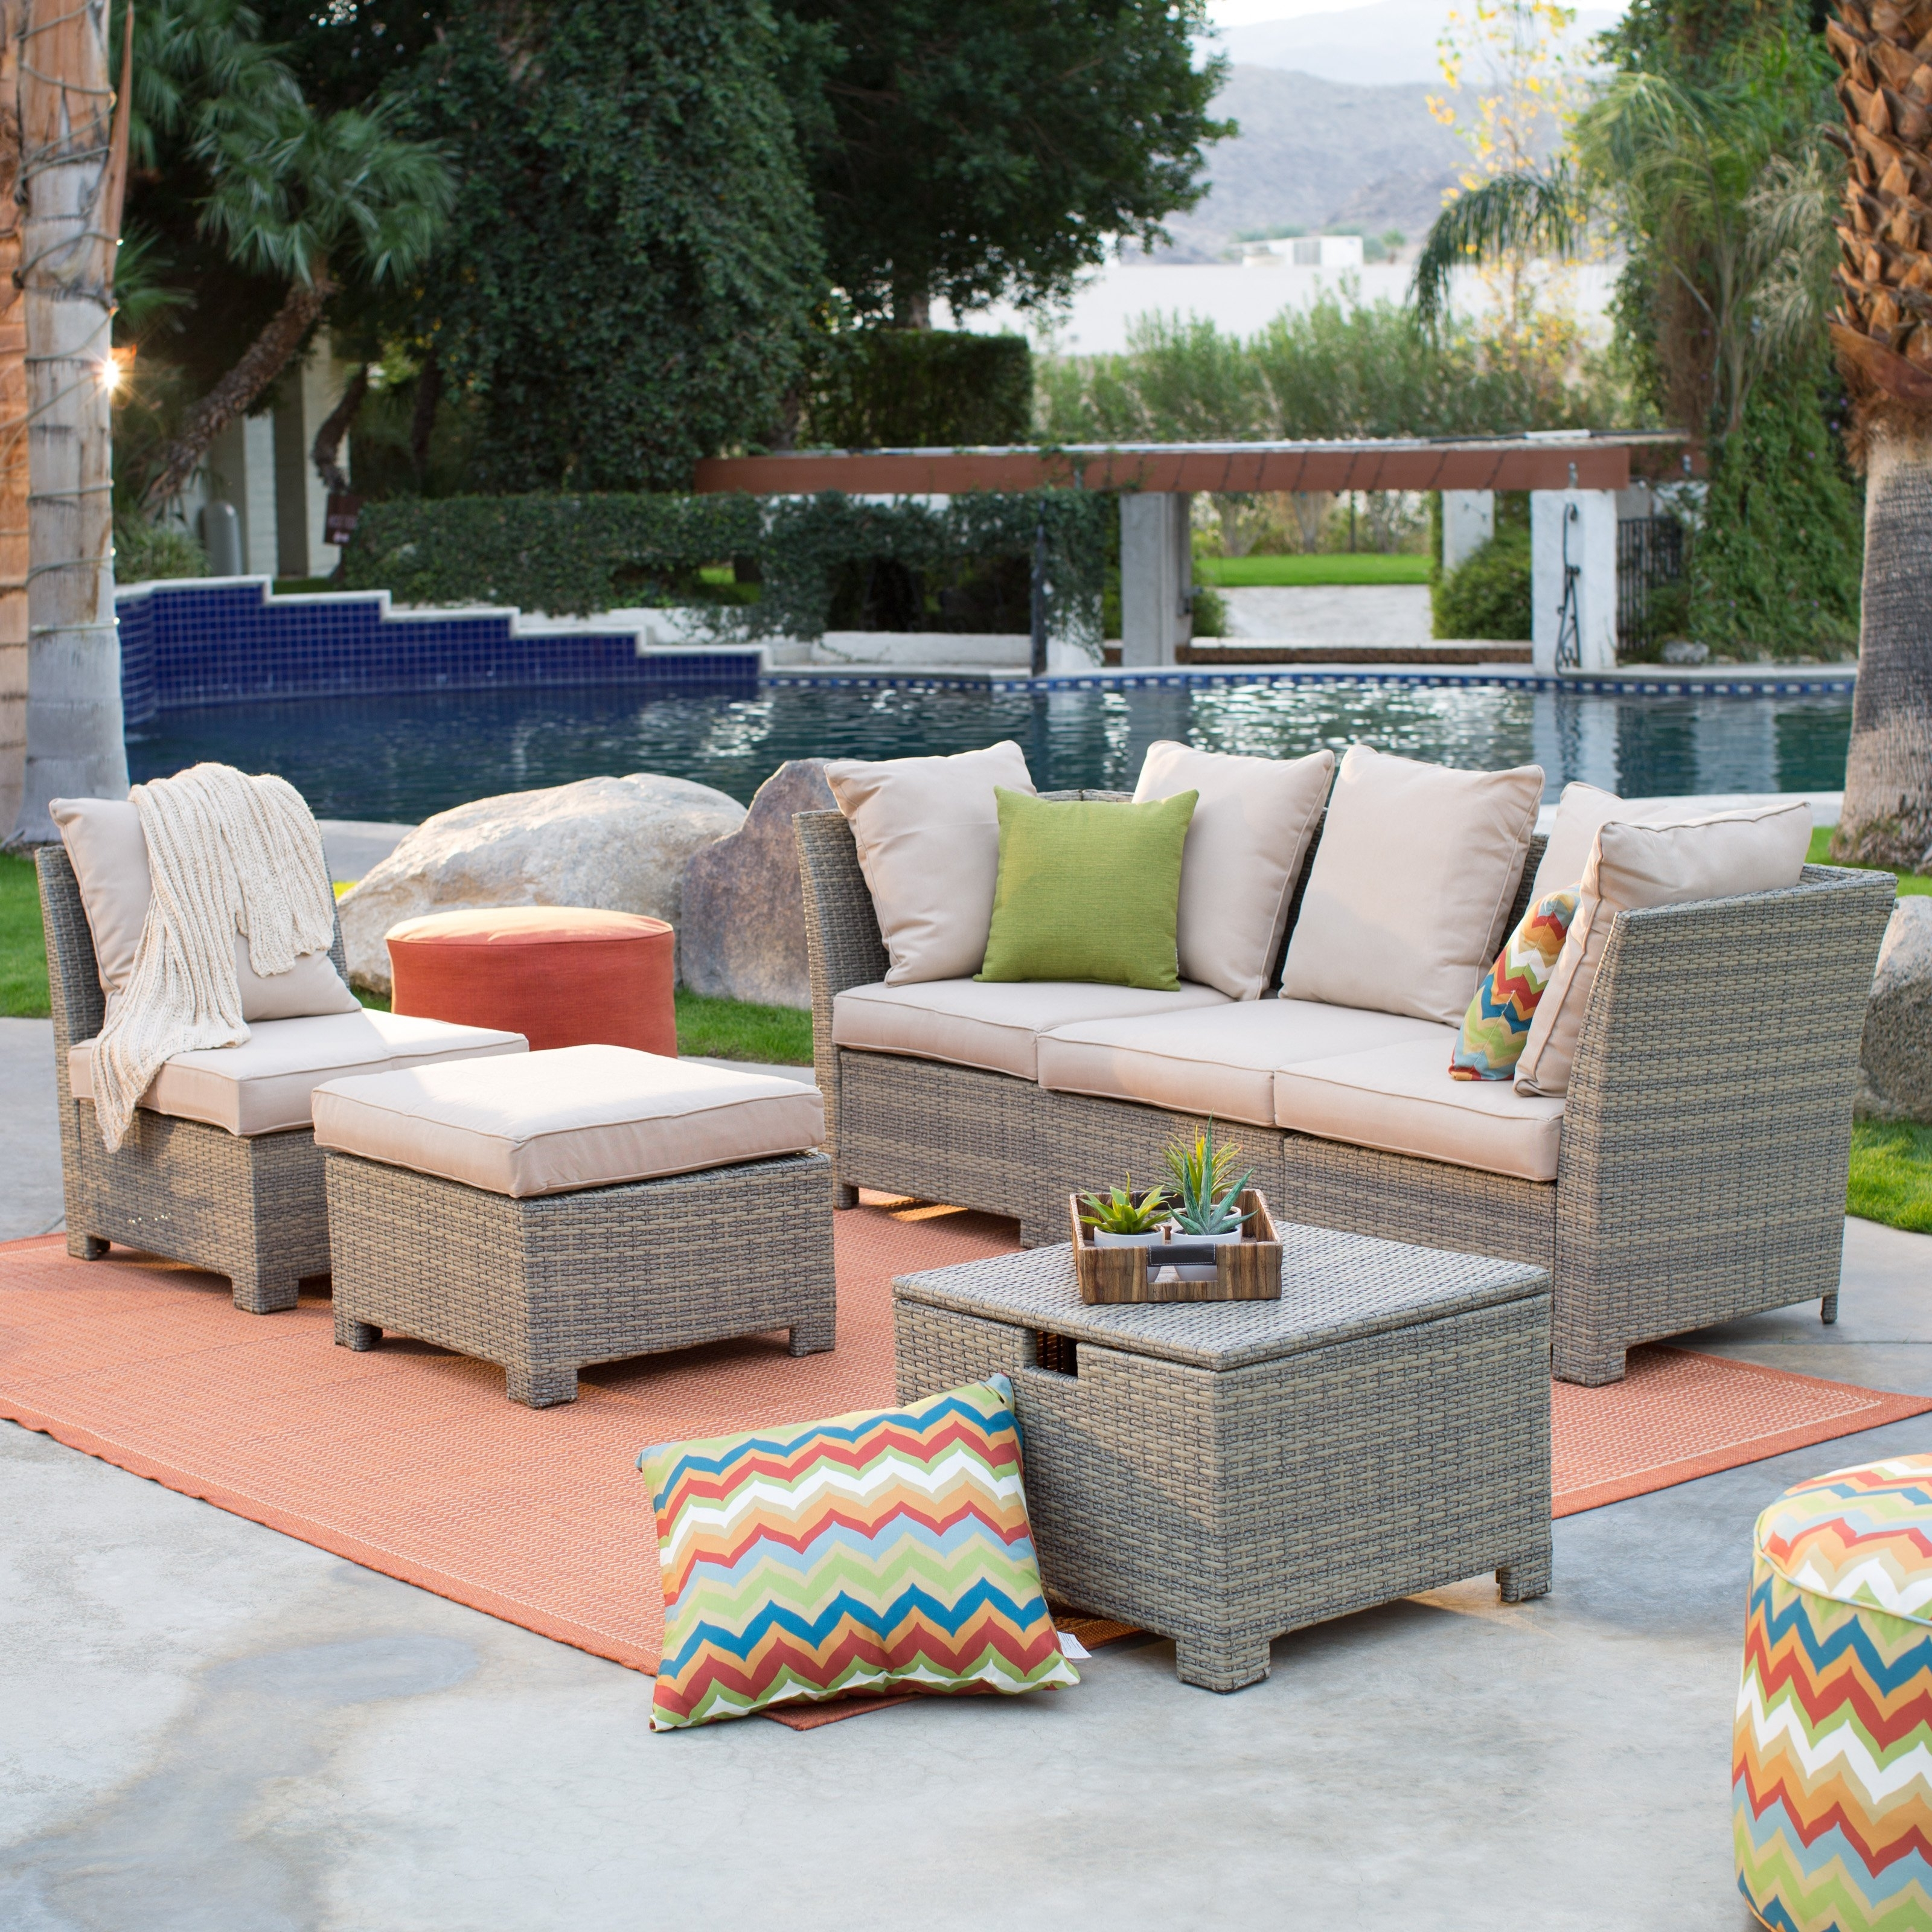 Coral Coast South Isle All Weather Wicker Natural Outdoor Pertaining To Well Known Patio Sectional Conversation Sets (View 5 of 20)